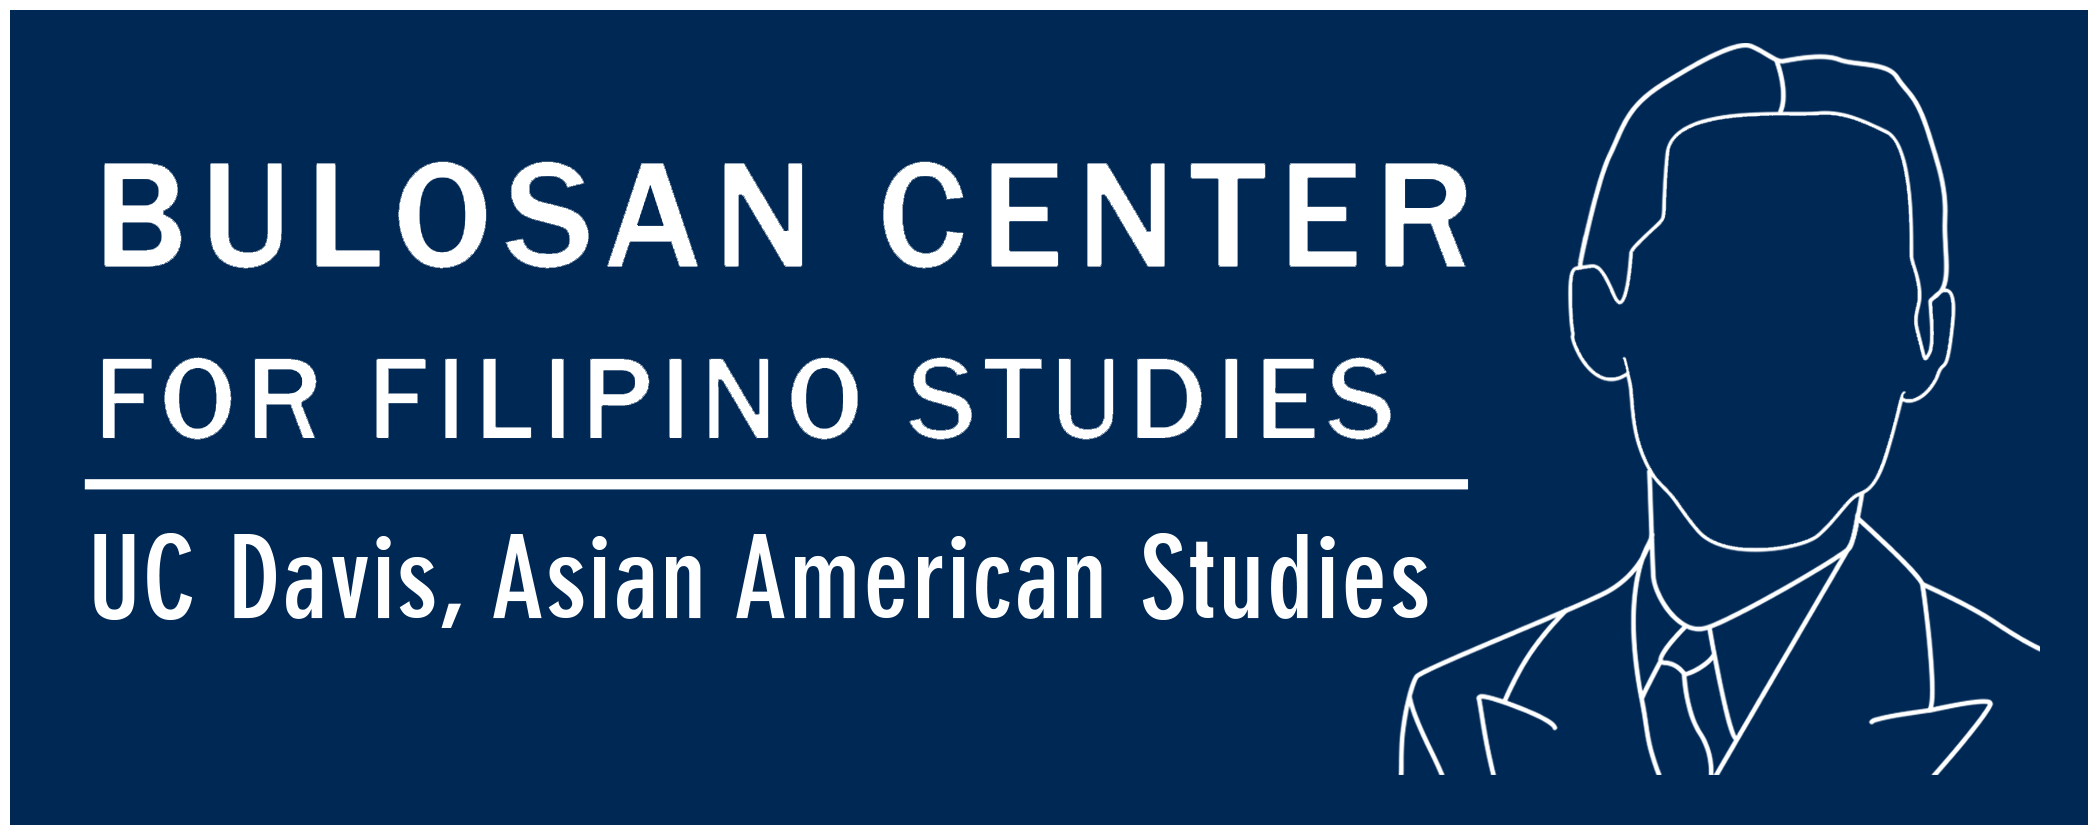 Bulosan Center for Filipino Studies